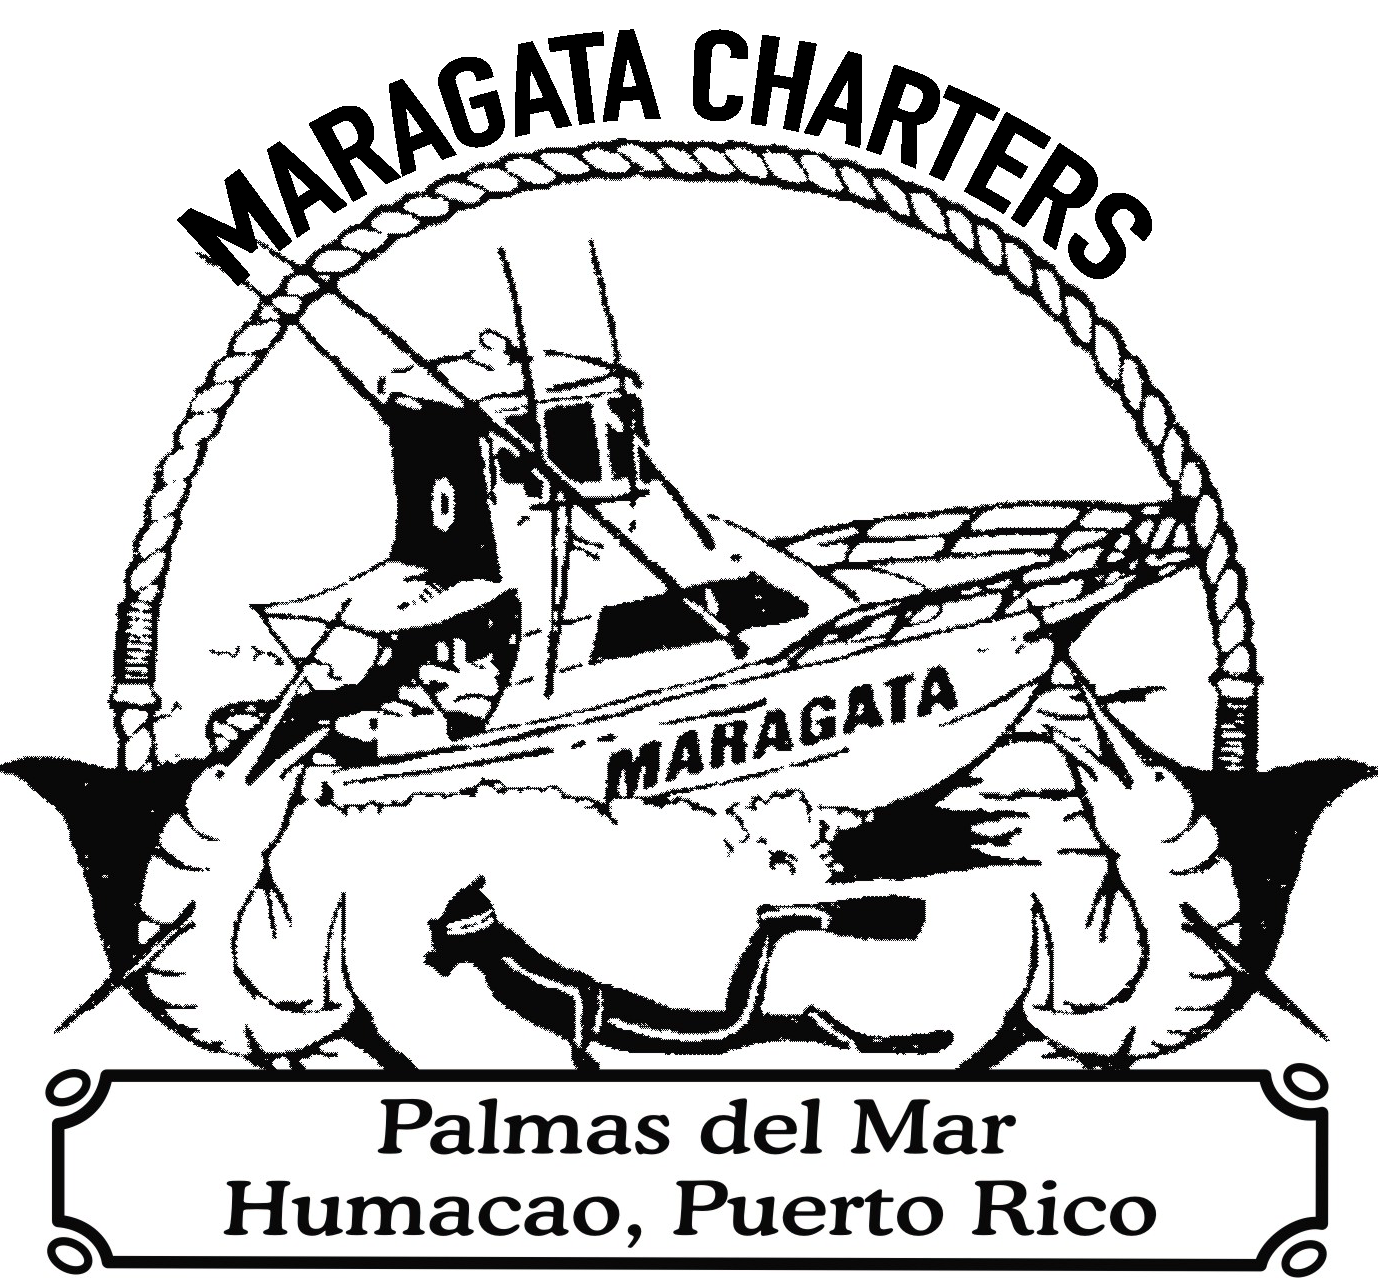 MARAGATA CHARTERS